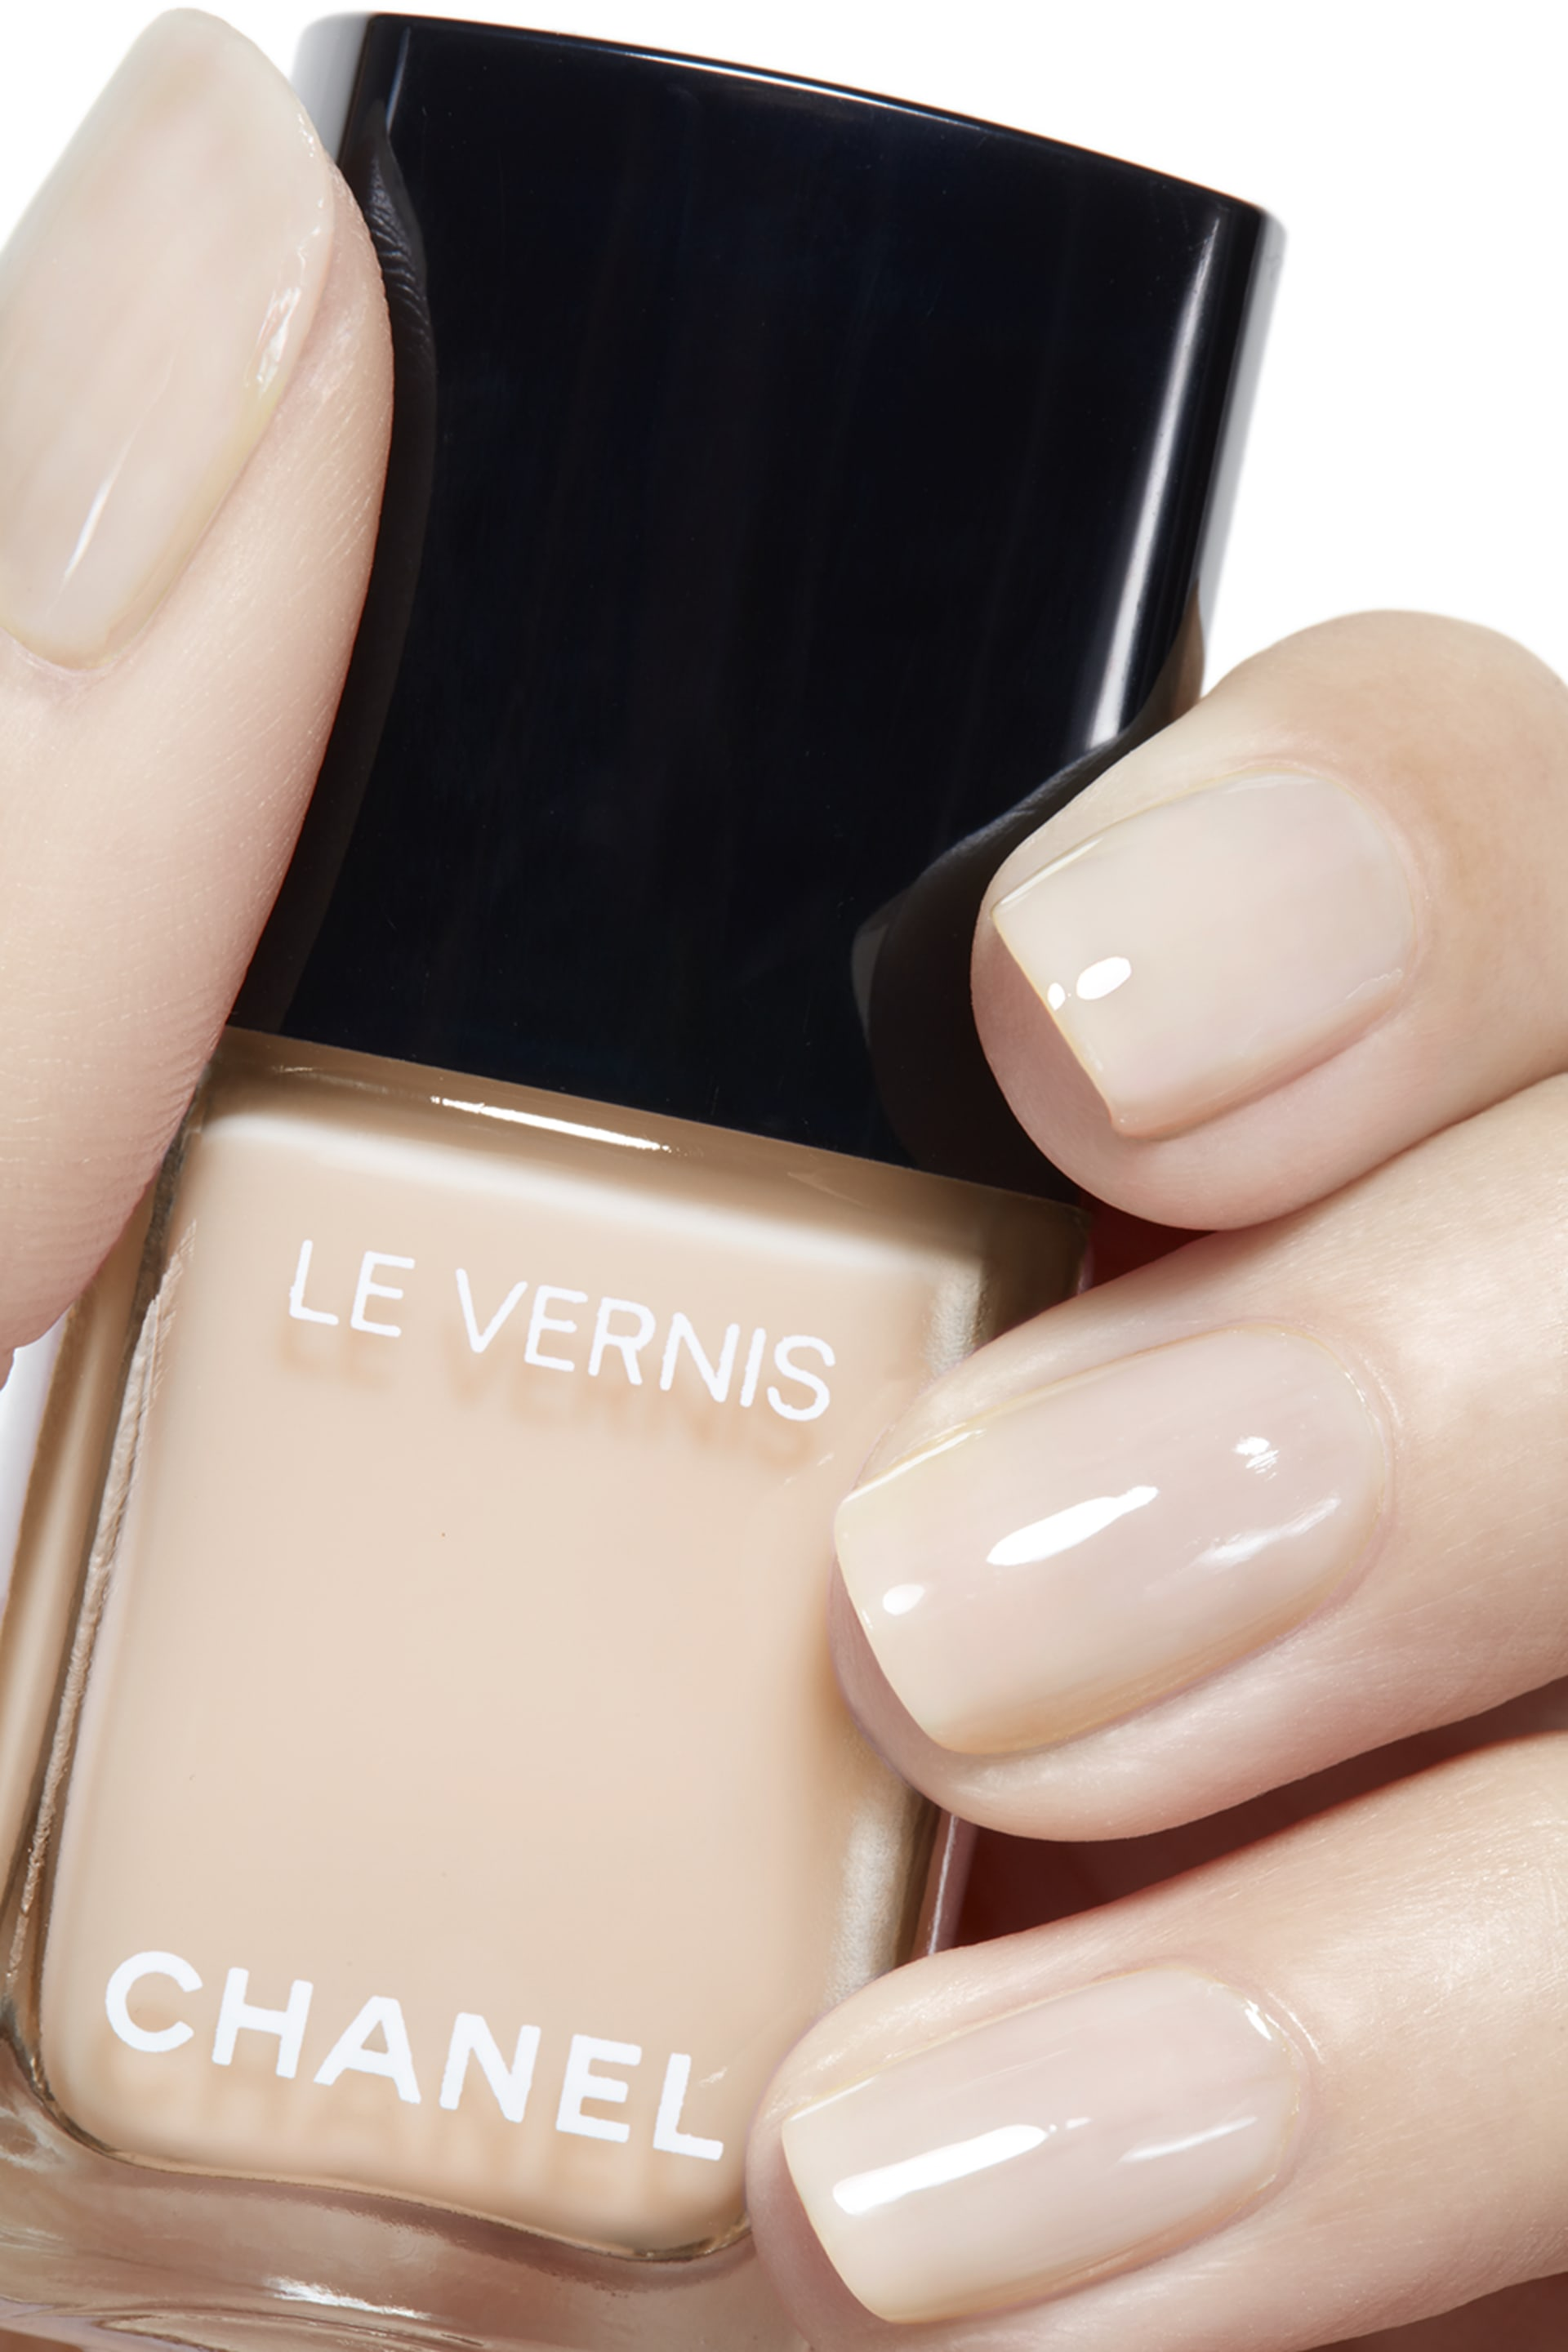 Visuel d'application maquillage 2 - LE VERNIS 548 - BLANC WHITE